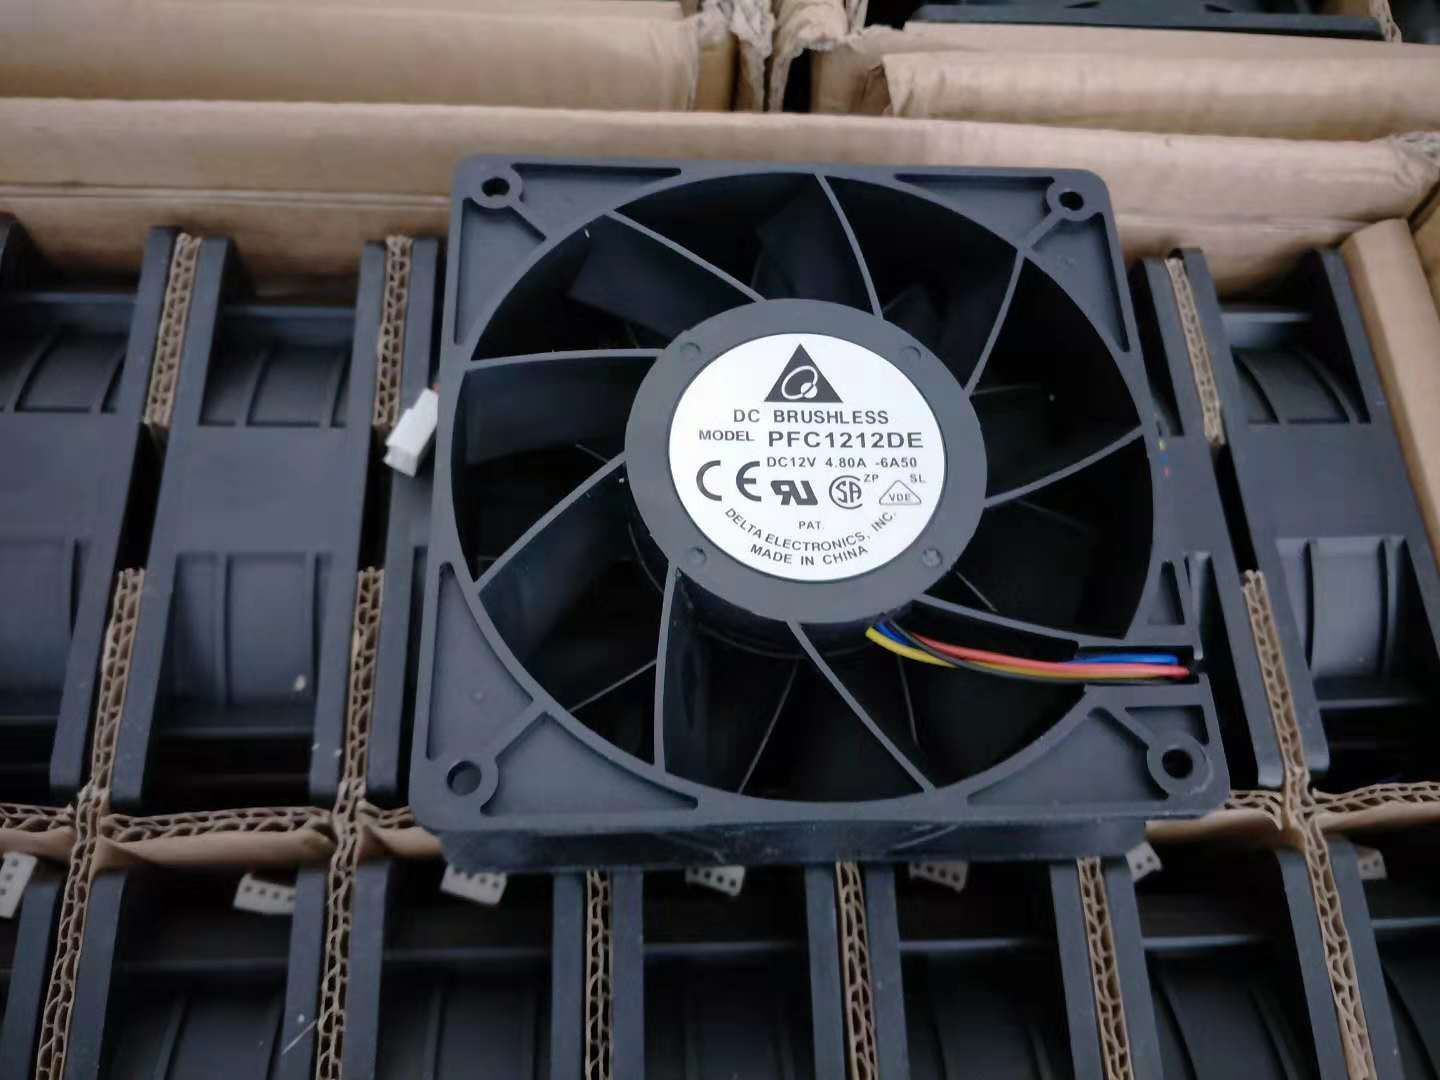 Stable quality Fans for antminer s9 l3 t9 6000RPM